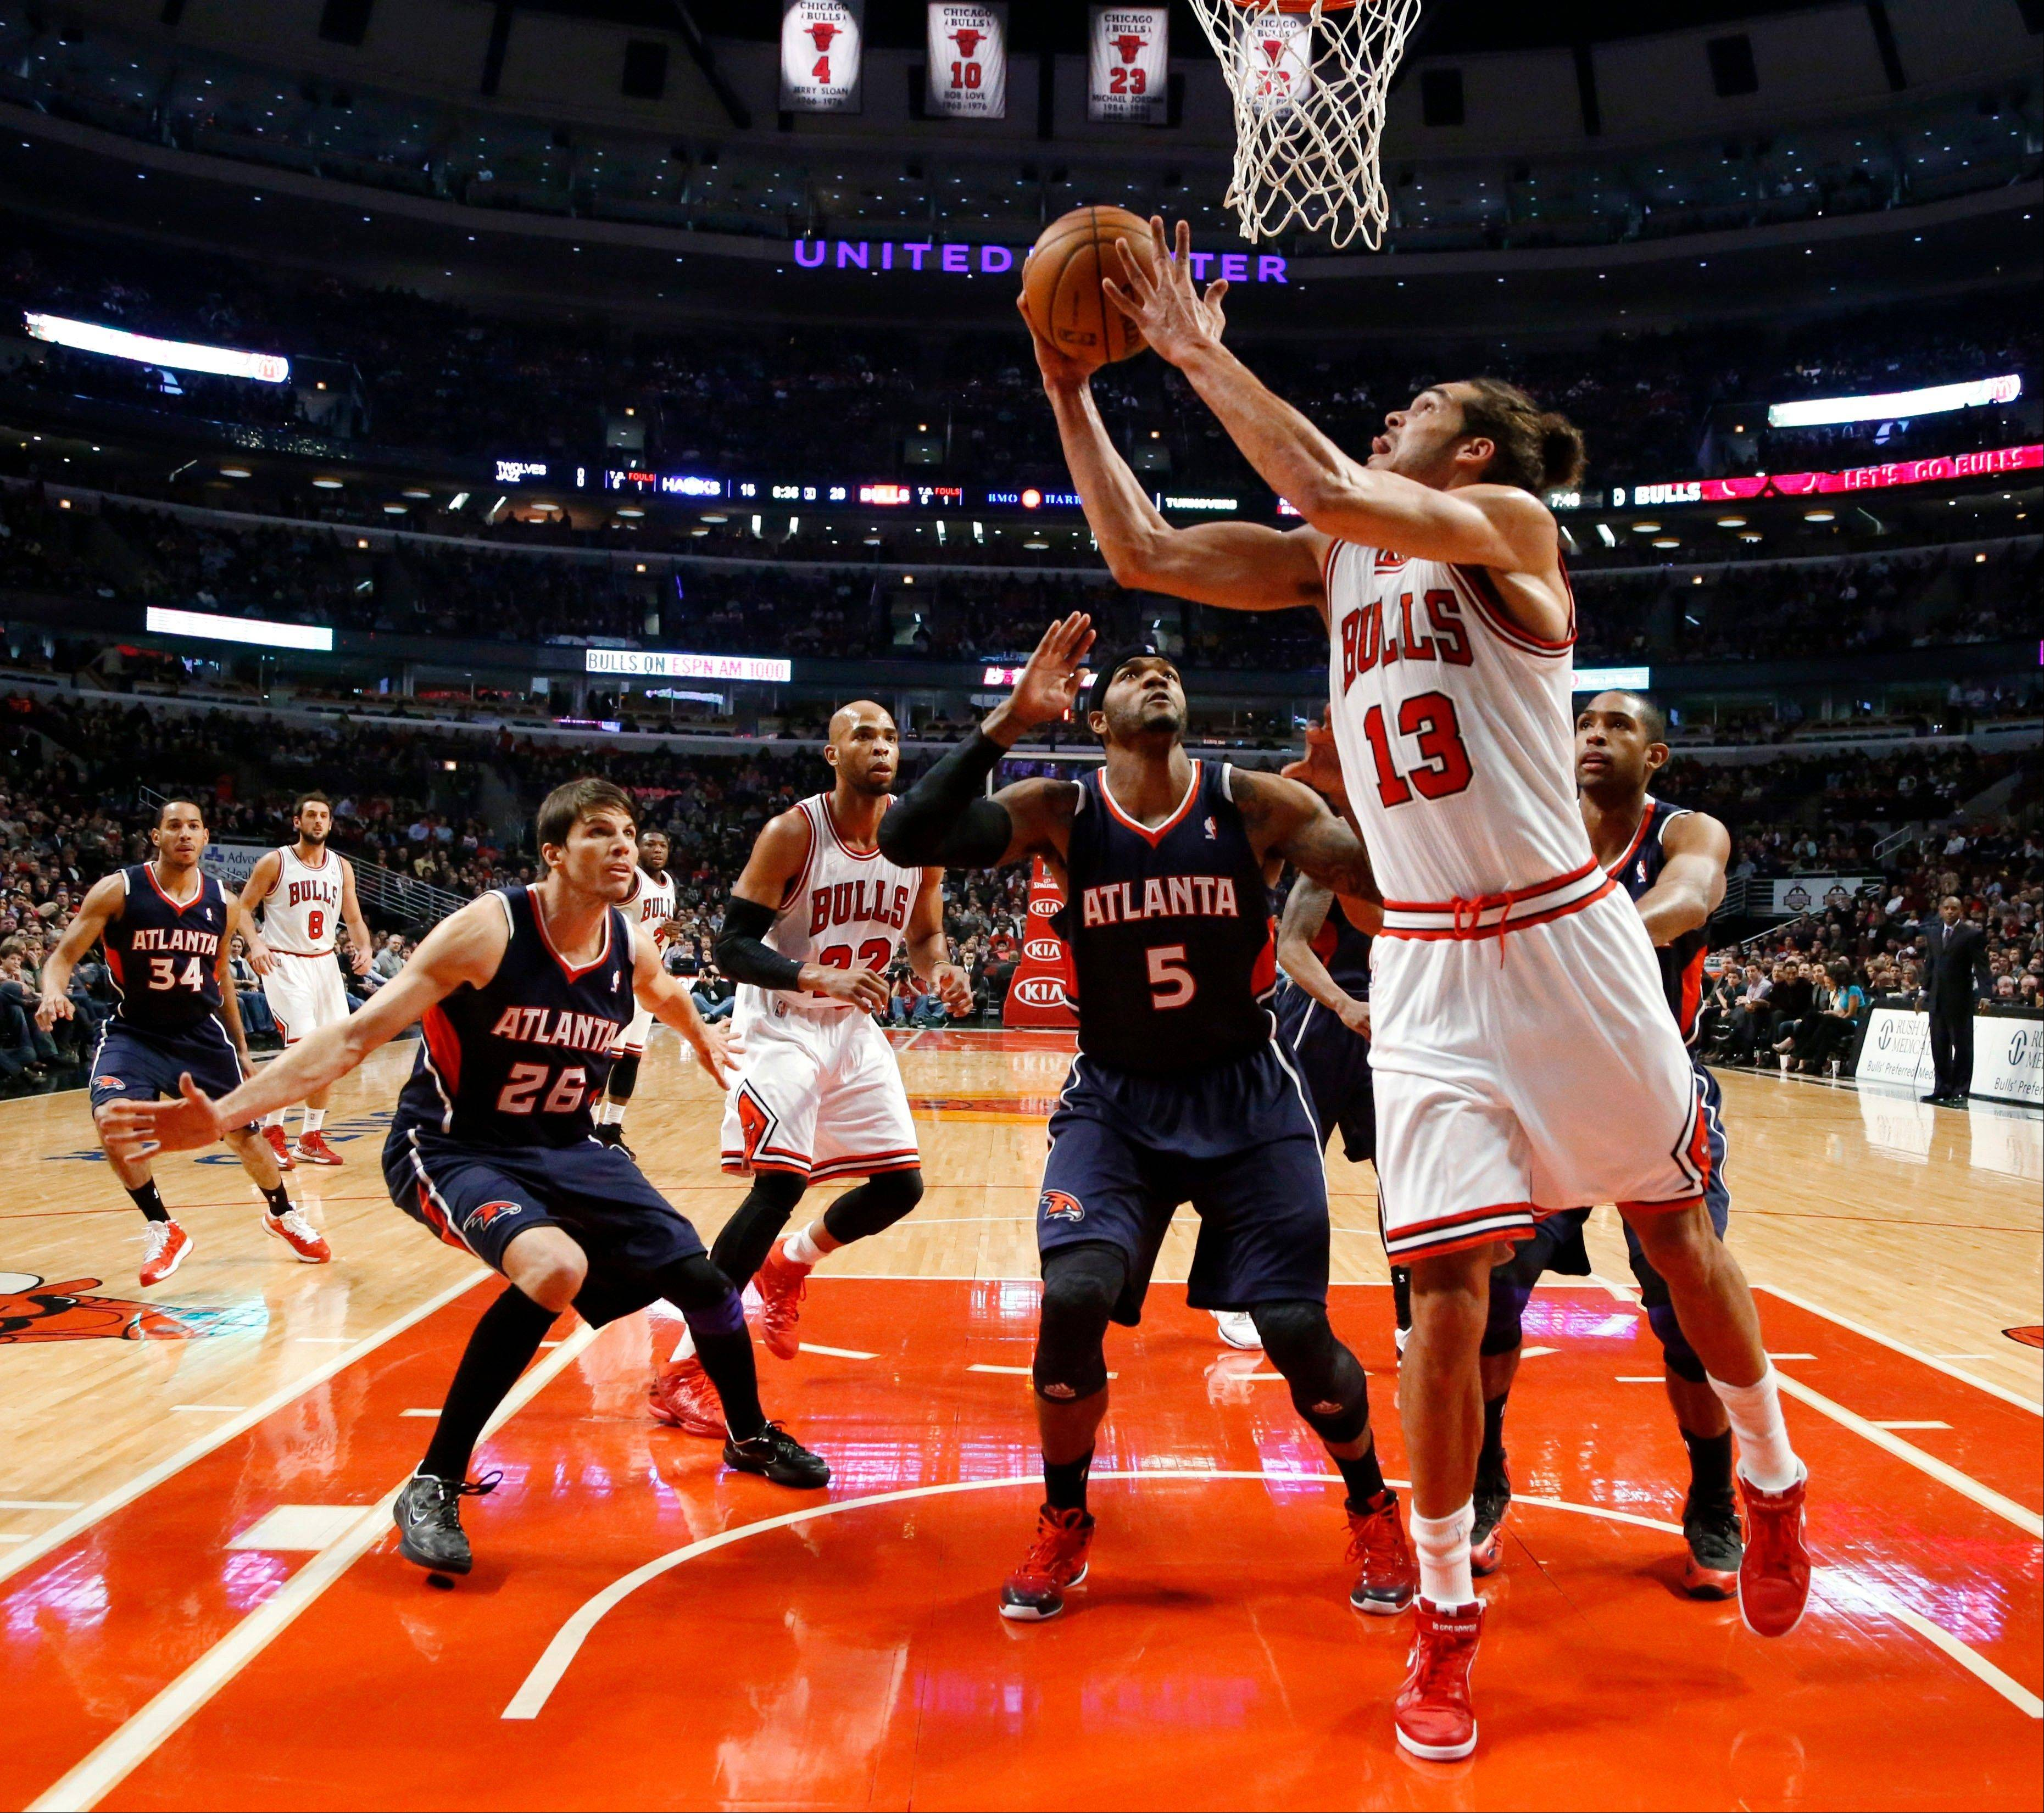 Chicago Bulls center Joakim Noah (13) shoots a reverse layup past Atlanta Hawks� Kyle Korver (26) and Josh Smith (5) during the first half of an NBA basketball game Monday, Jan. 14, 2013, in Chicago.